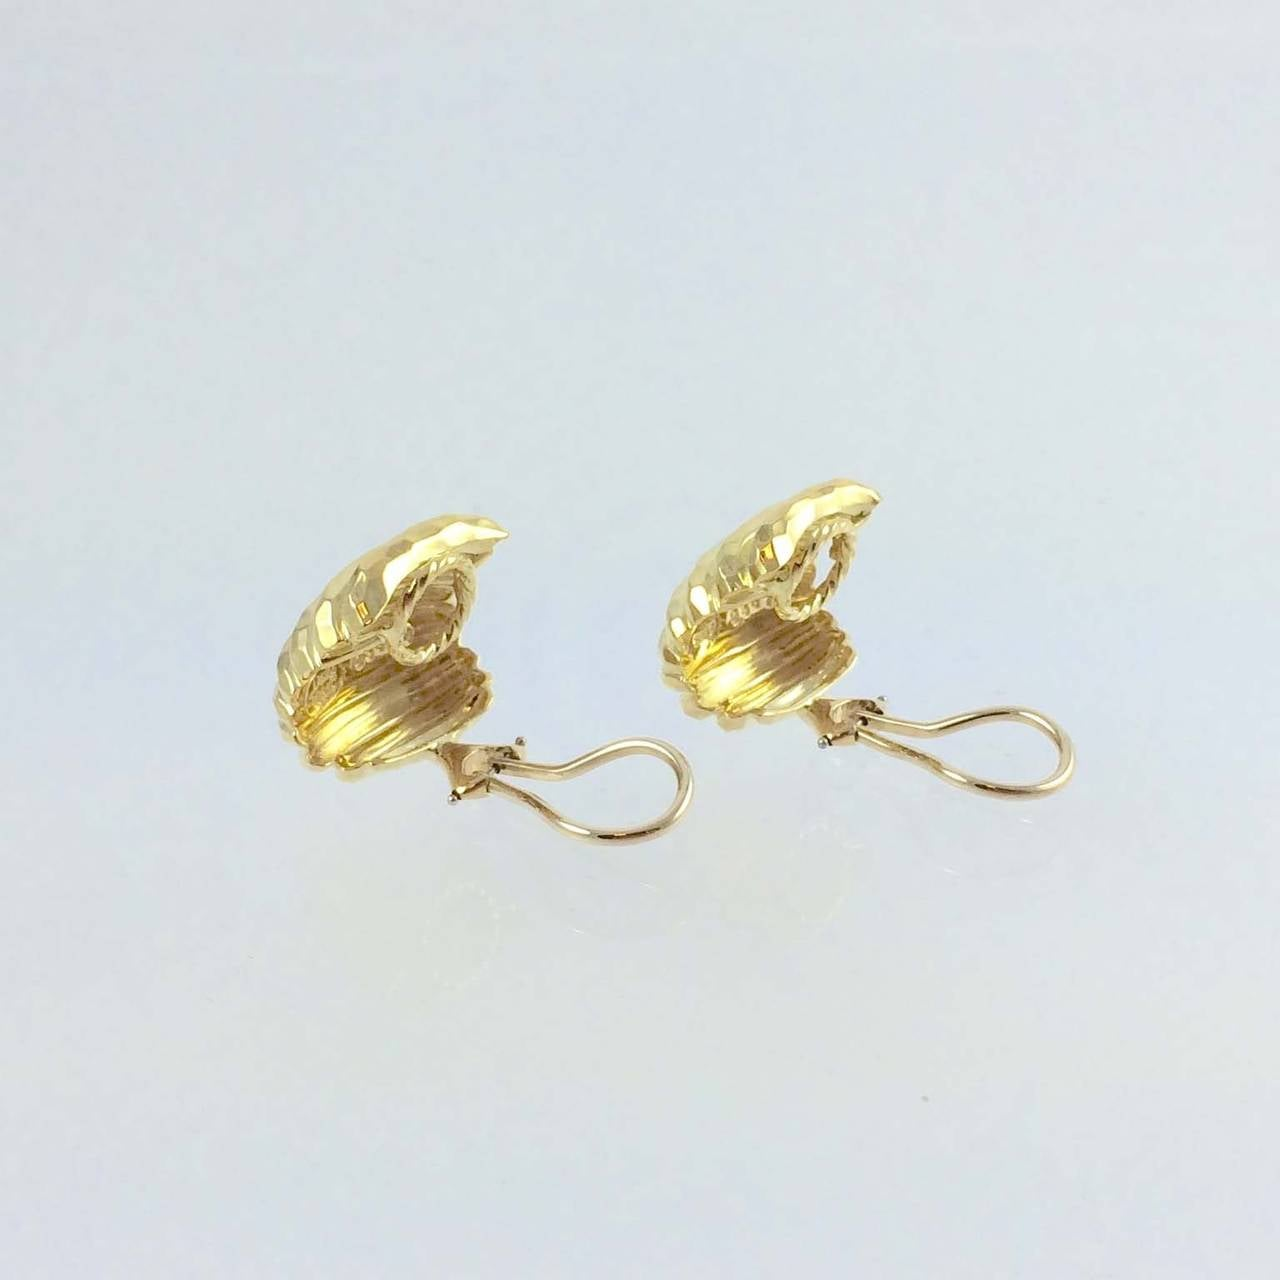 18K yellow gold faceted Henry Dunay ear clips, with omega backs.  Measuring 19.8mm long by 18.2mm wide